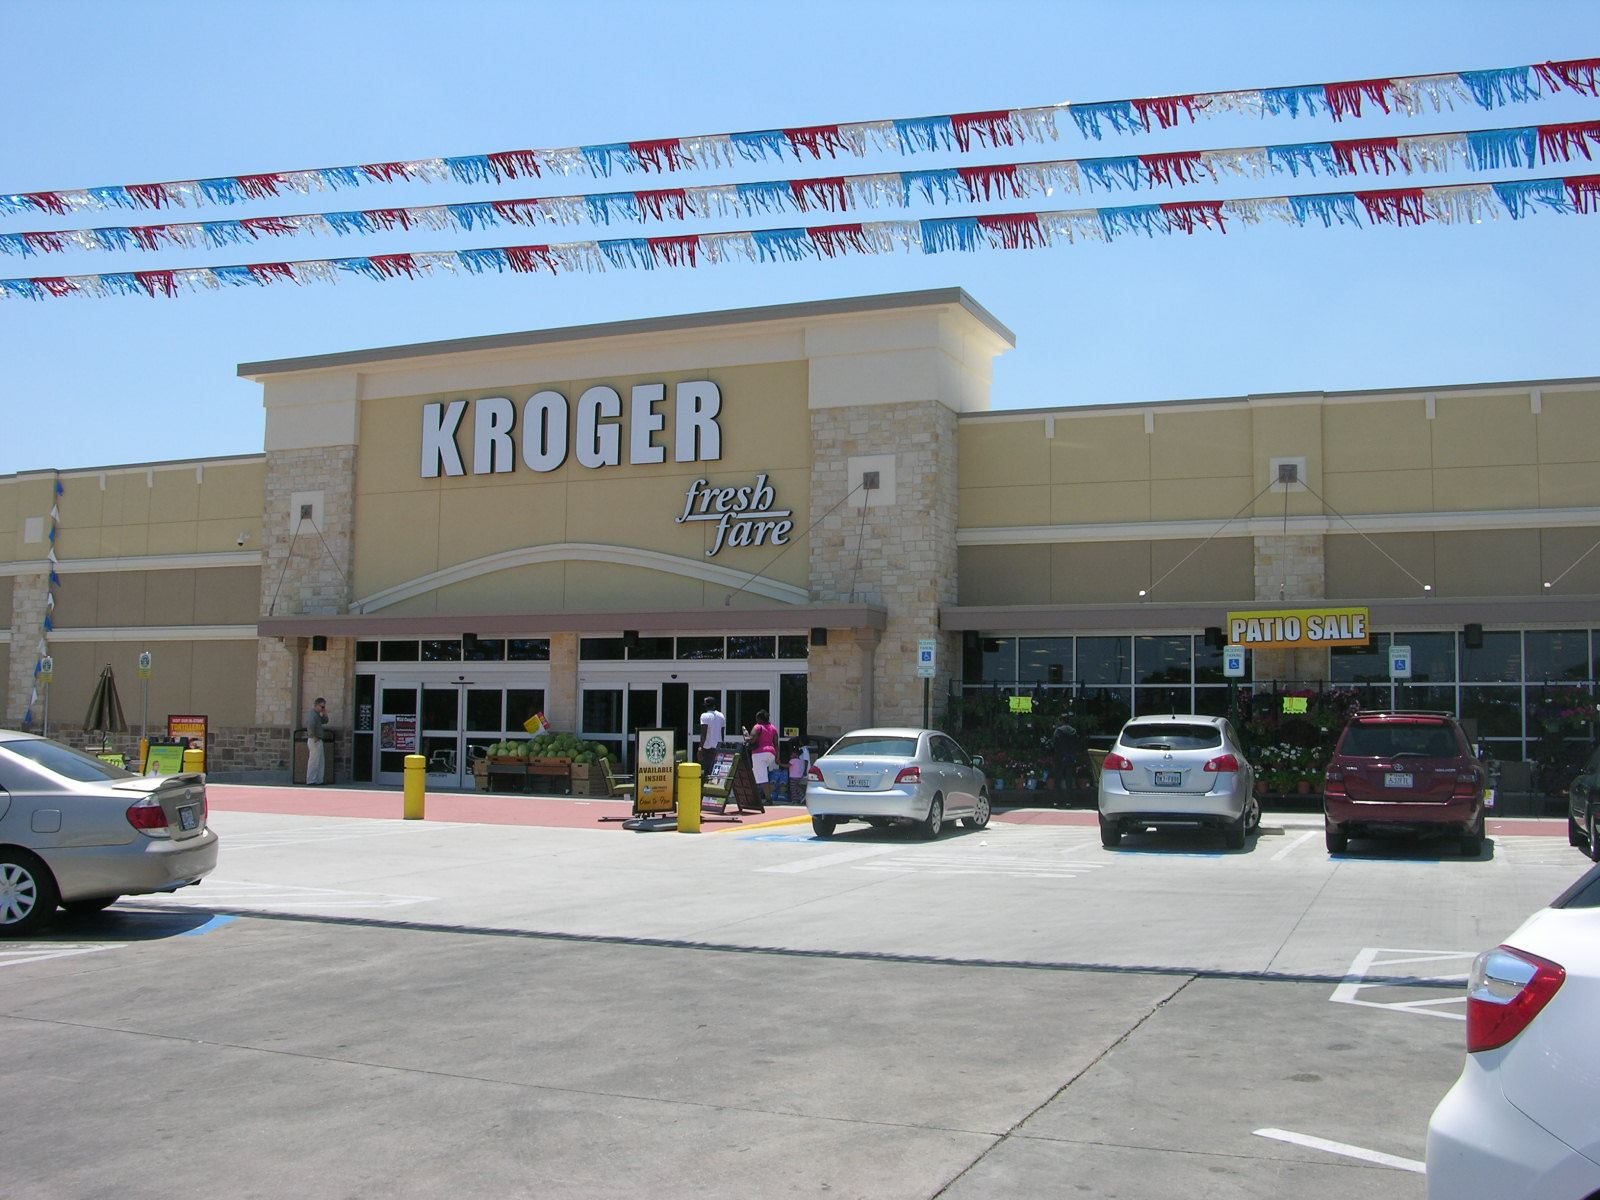 Exterior Kroger Grand Opening